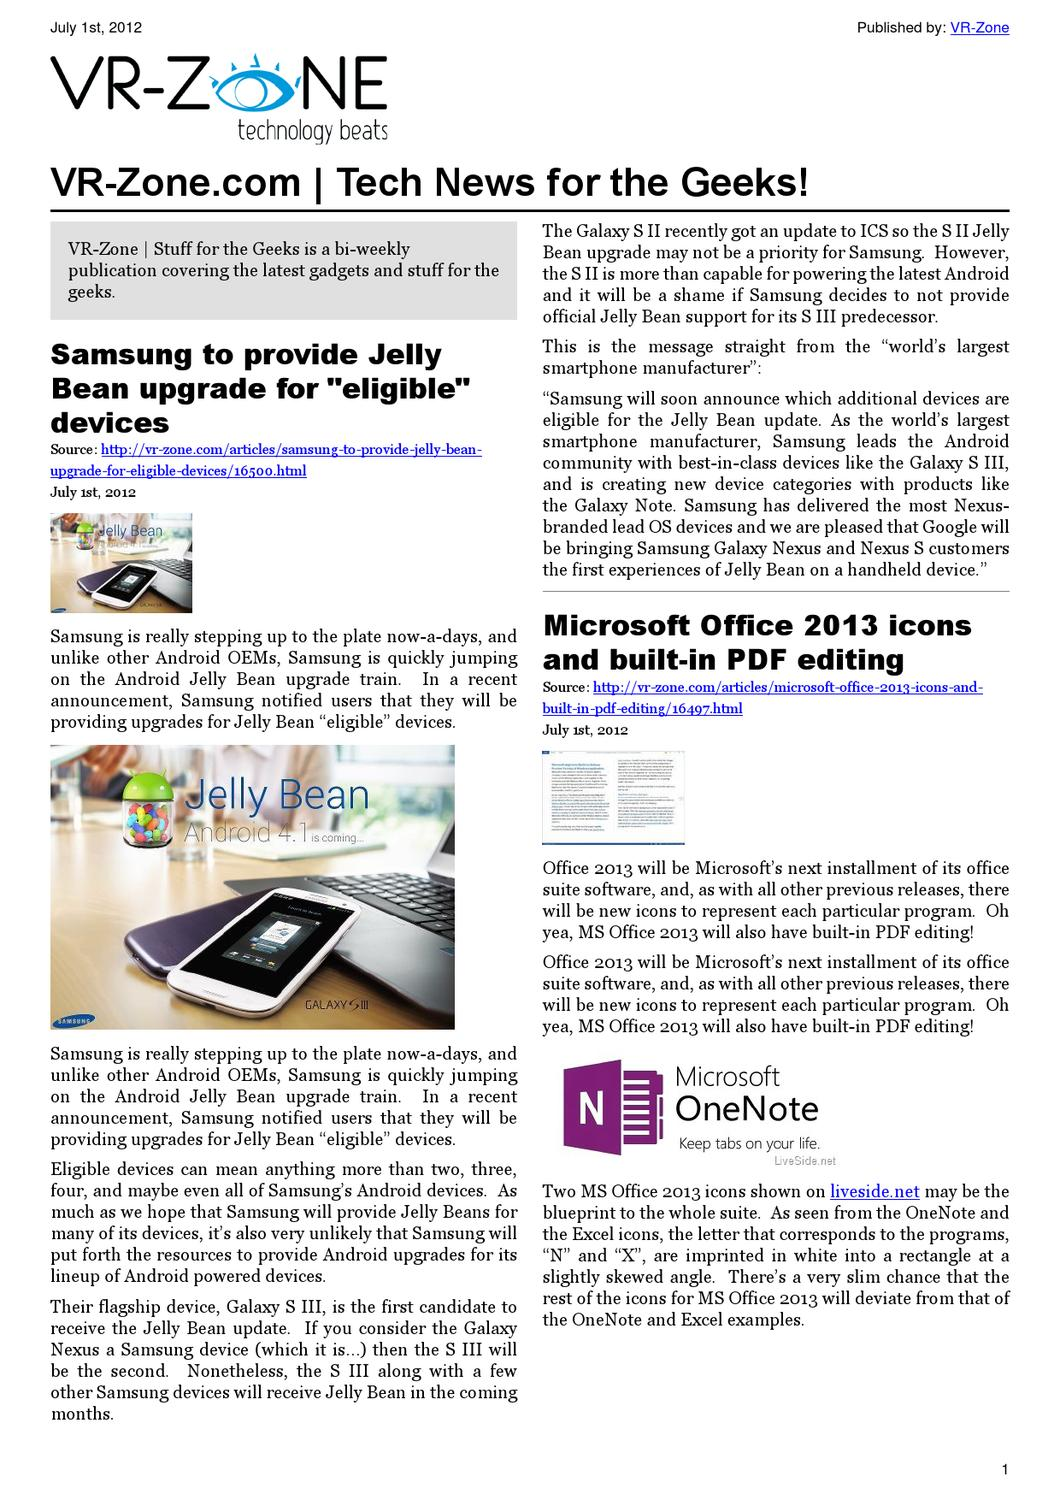 Vr Zone Tech News For The Geeks Jul 2012 Issue By Media Pte Ltd Displaying 16gt Images Current Electricity Kids Issuu